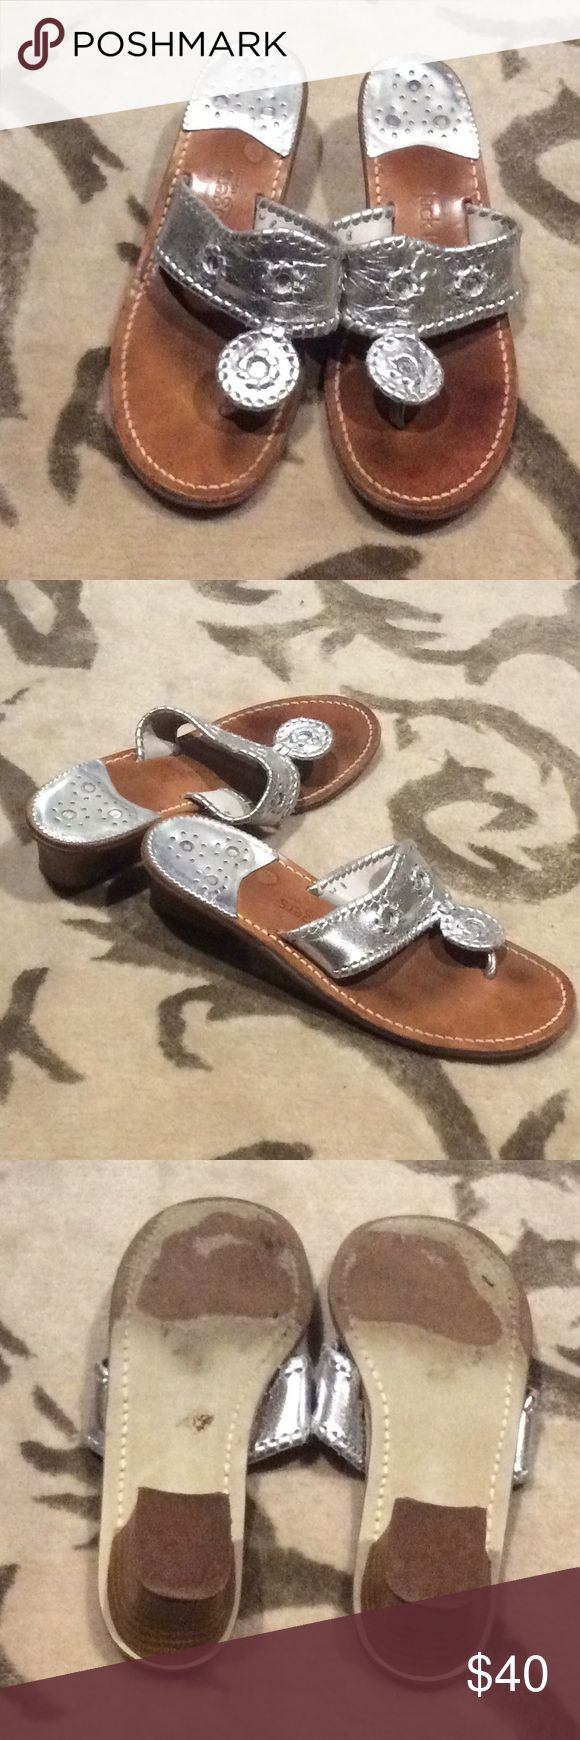 """Jack Rogers Silver Hamptons Navajo Sandals Metallic silver leather Jack Rogers sandals with flowers stitched on 1.5"""" heel. Gently used. Jack Rogers Shoes Sandals"""